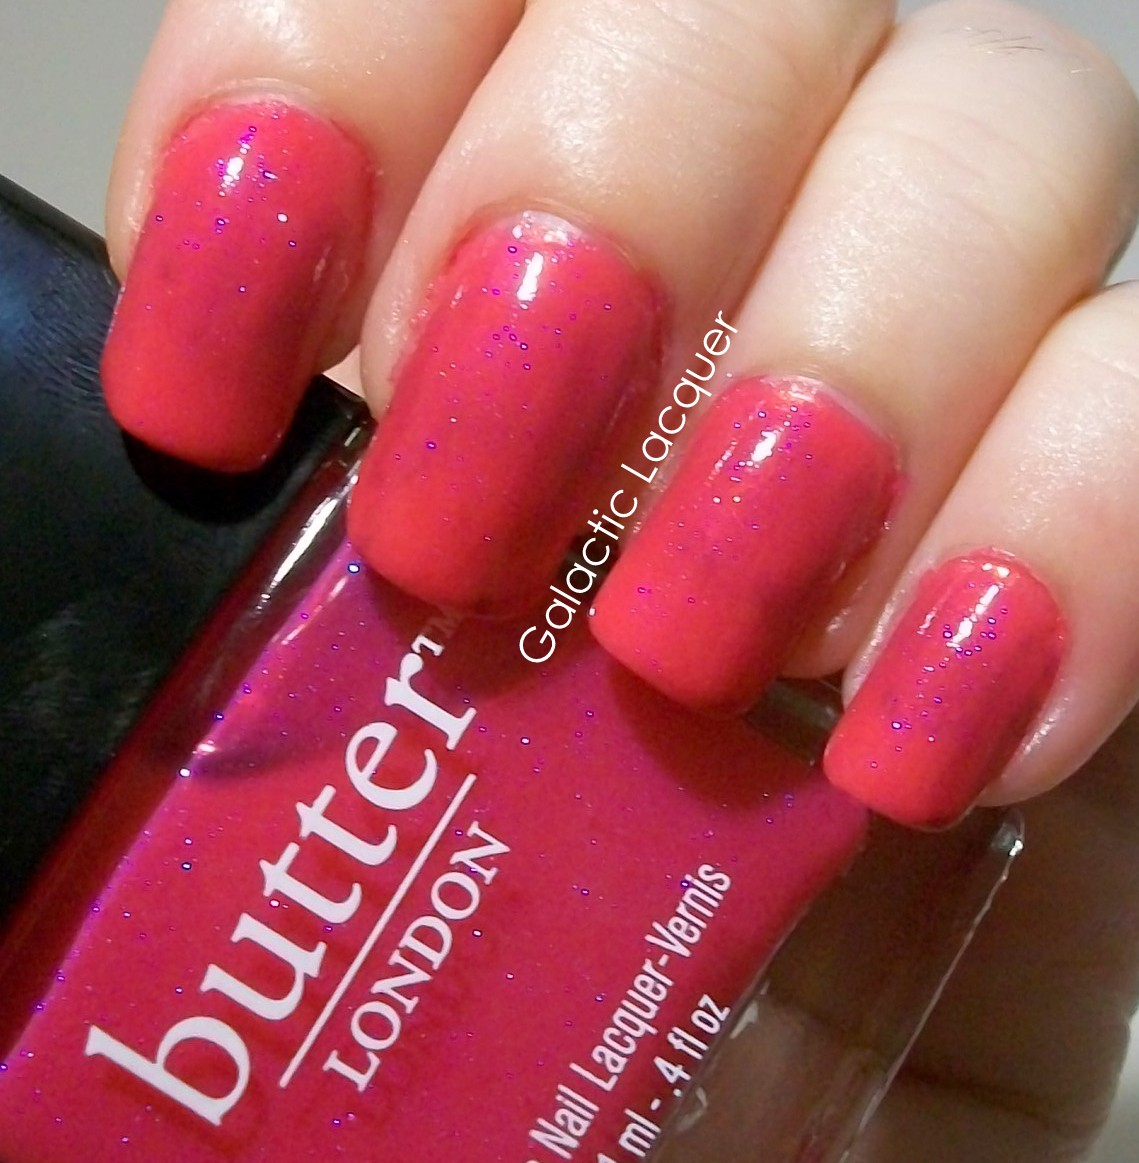 Galactic Lacquer: August 2012